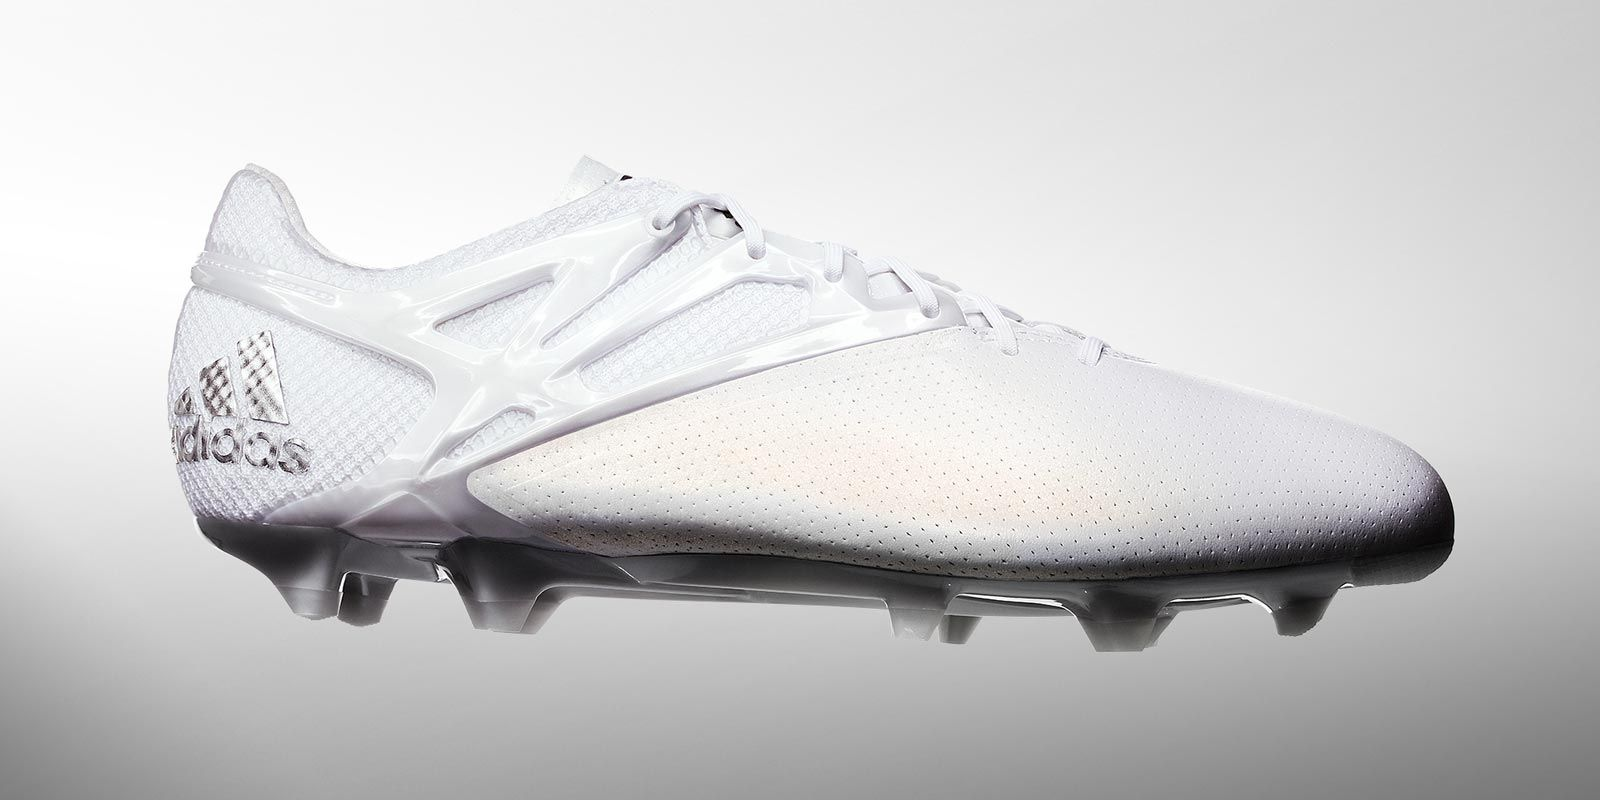 buy online 6ea65 1ce77 The new Adidas Messi 2015 Ballon d Or football boots celebrate Lionel  Messi s fifth win of the award in style, combining a white base with silver  metallic ...